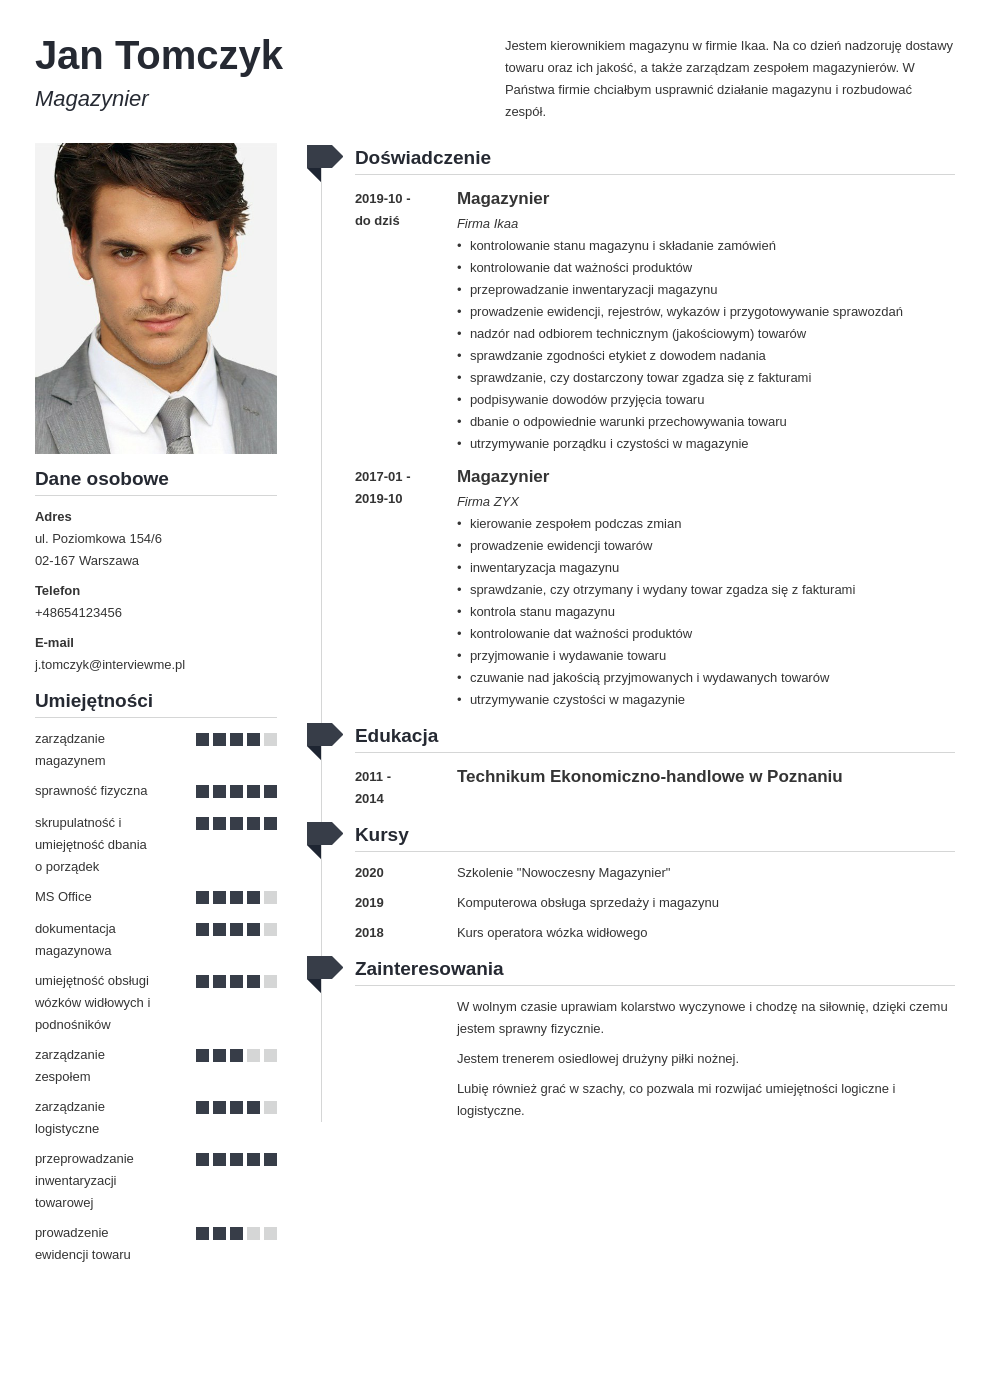 curriculum vitae 8 zbednych elementow template muse